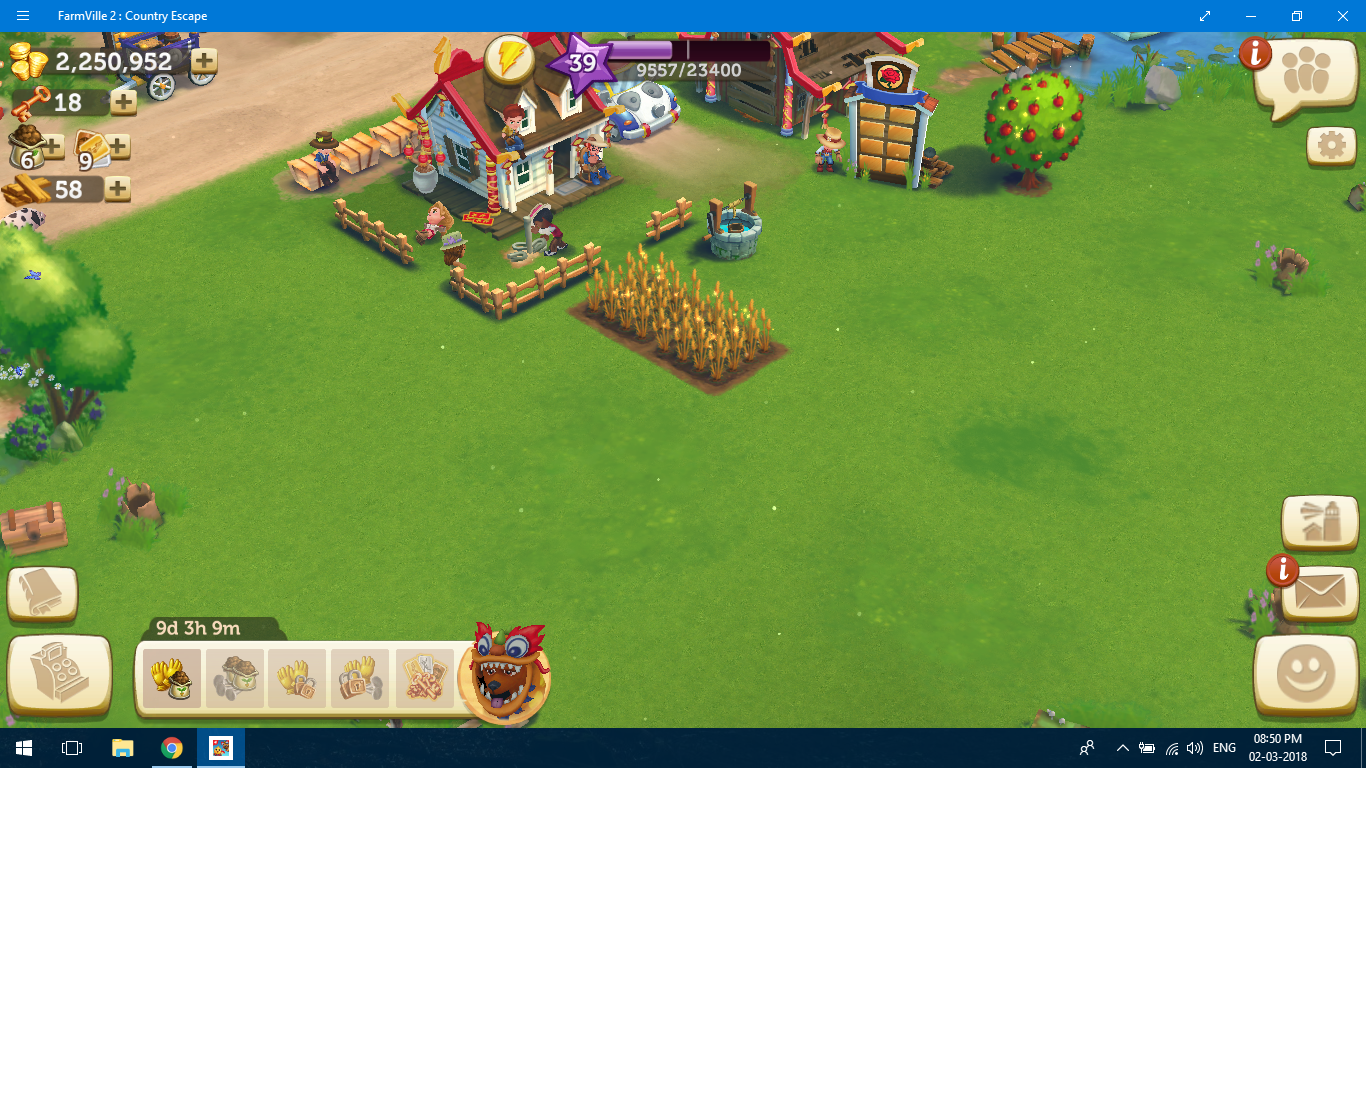 my level is showing 39 but all my farm and animals are